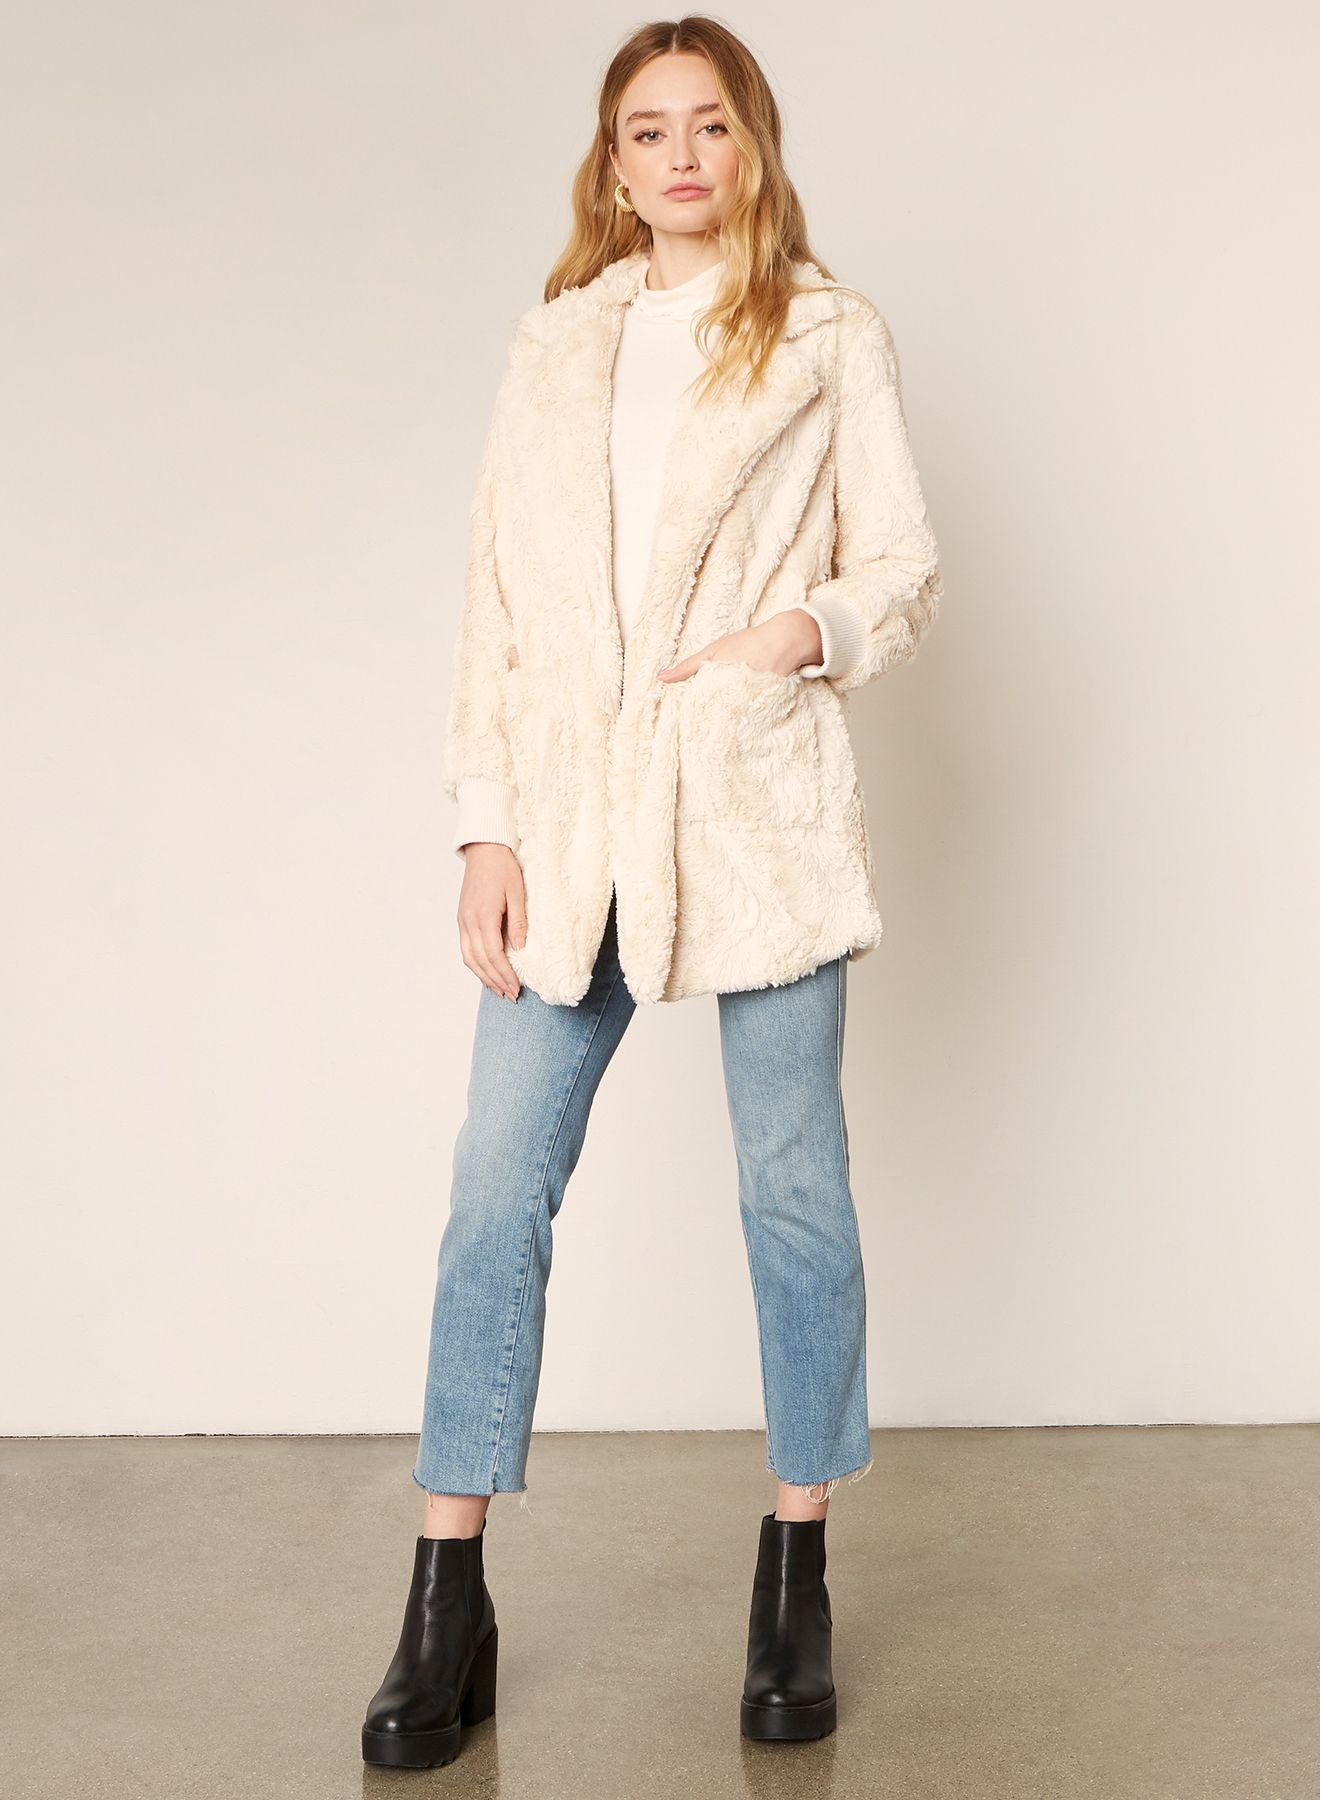 Swirl Next Door Jacket in Oatmeal